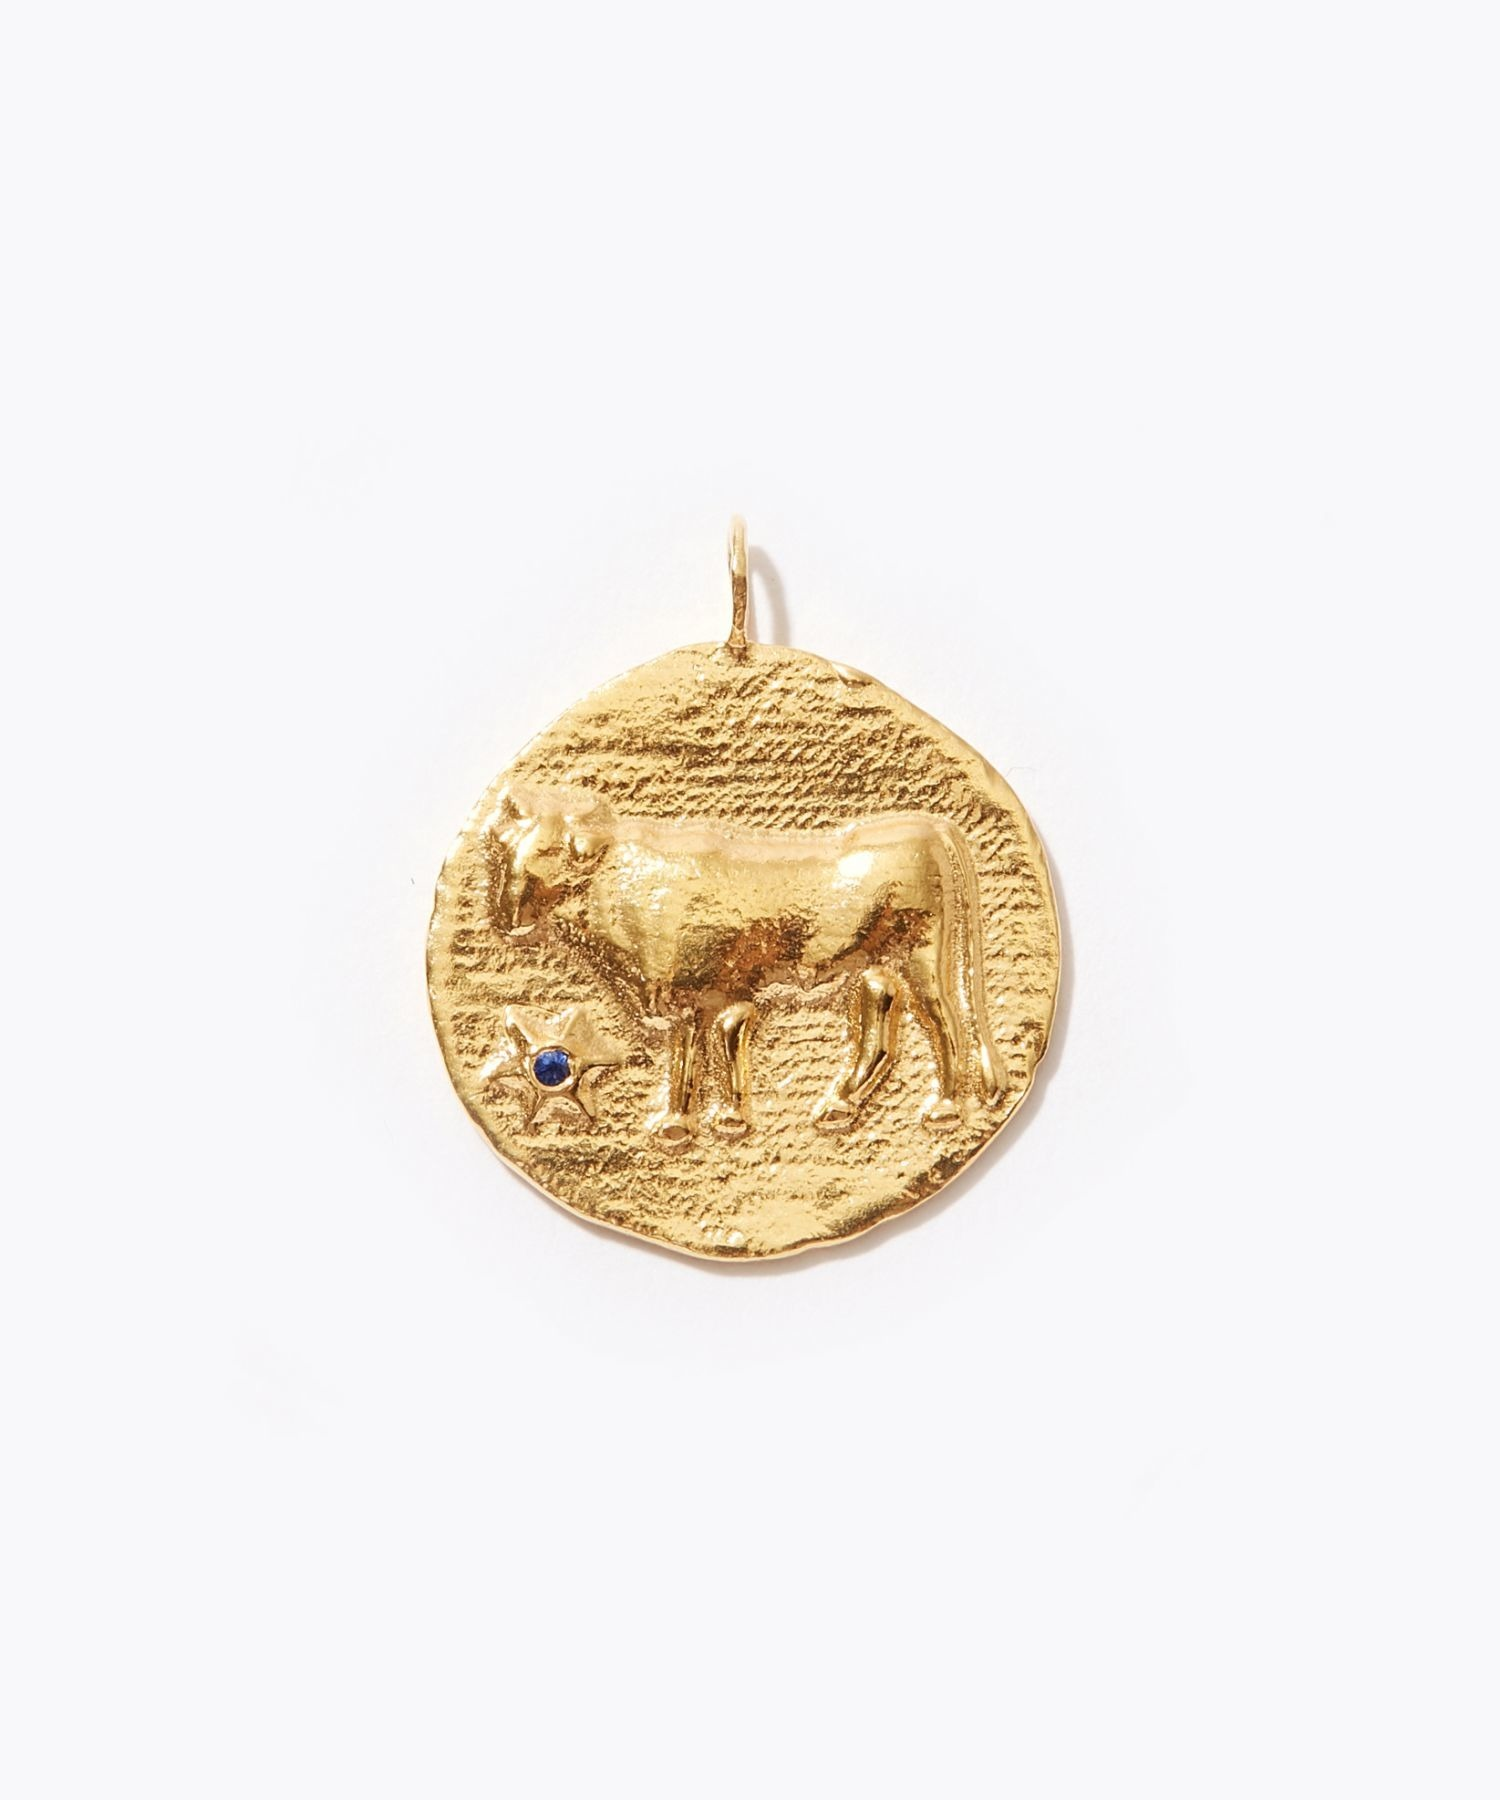 [constellation] Taurus big coin charm